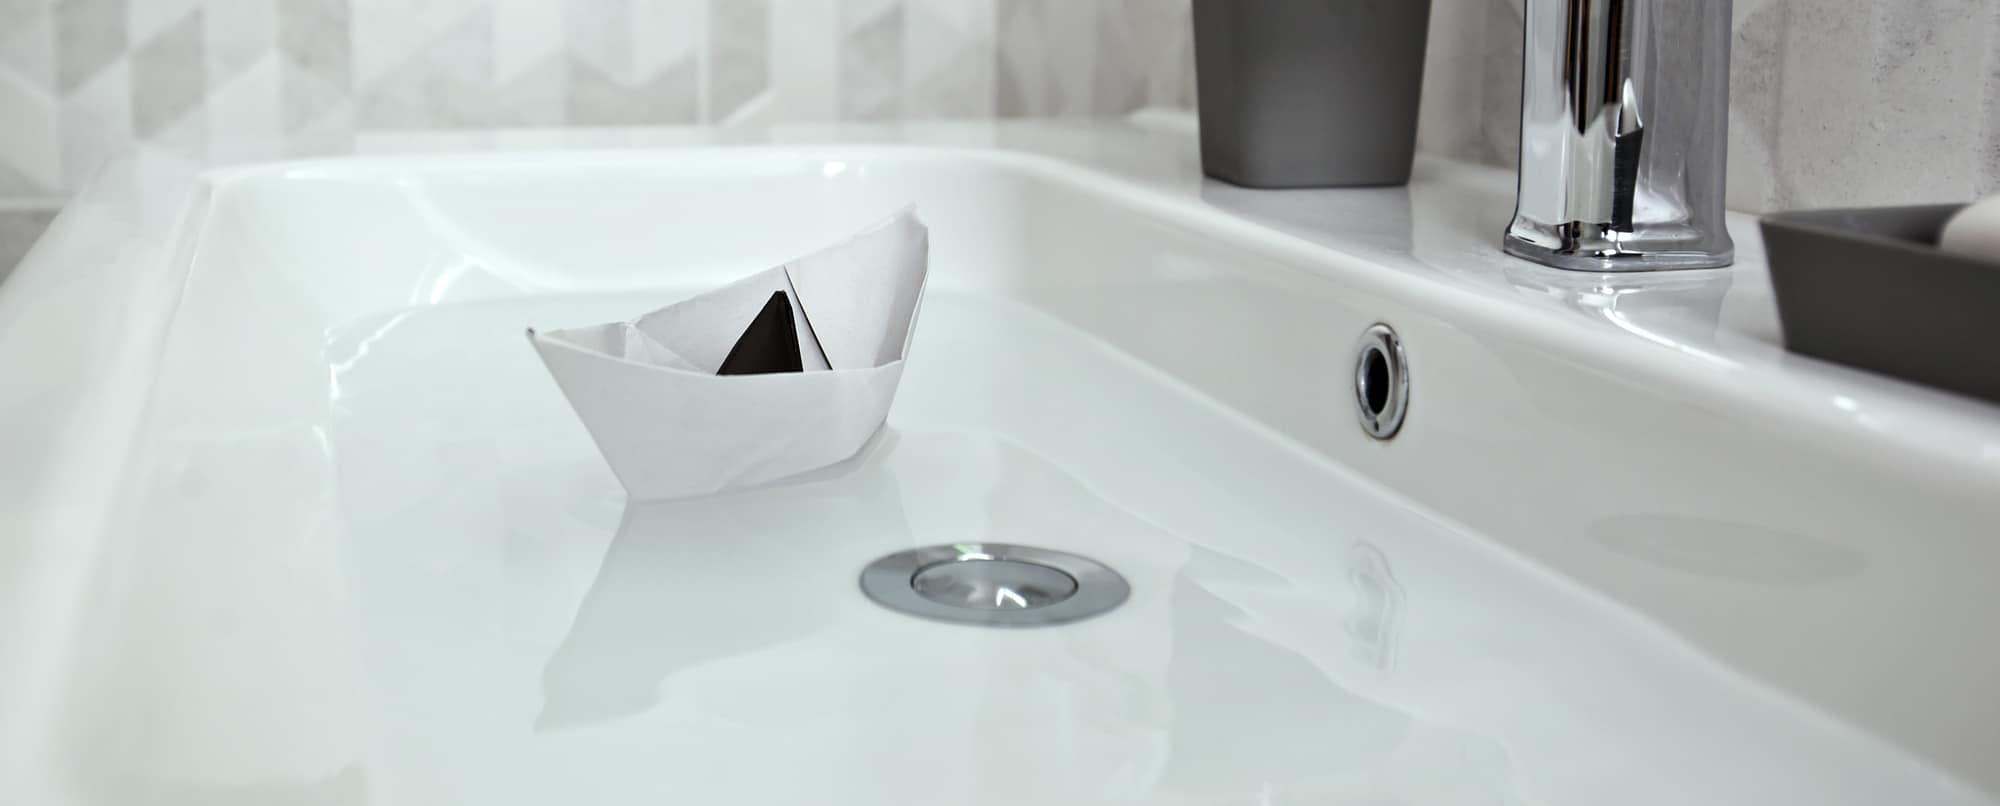 Can you have a bathtub on a canal boat?